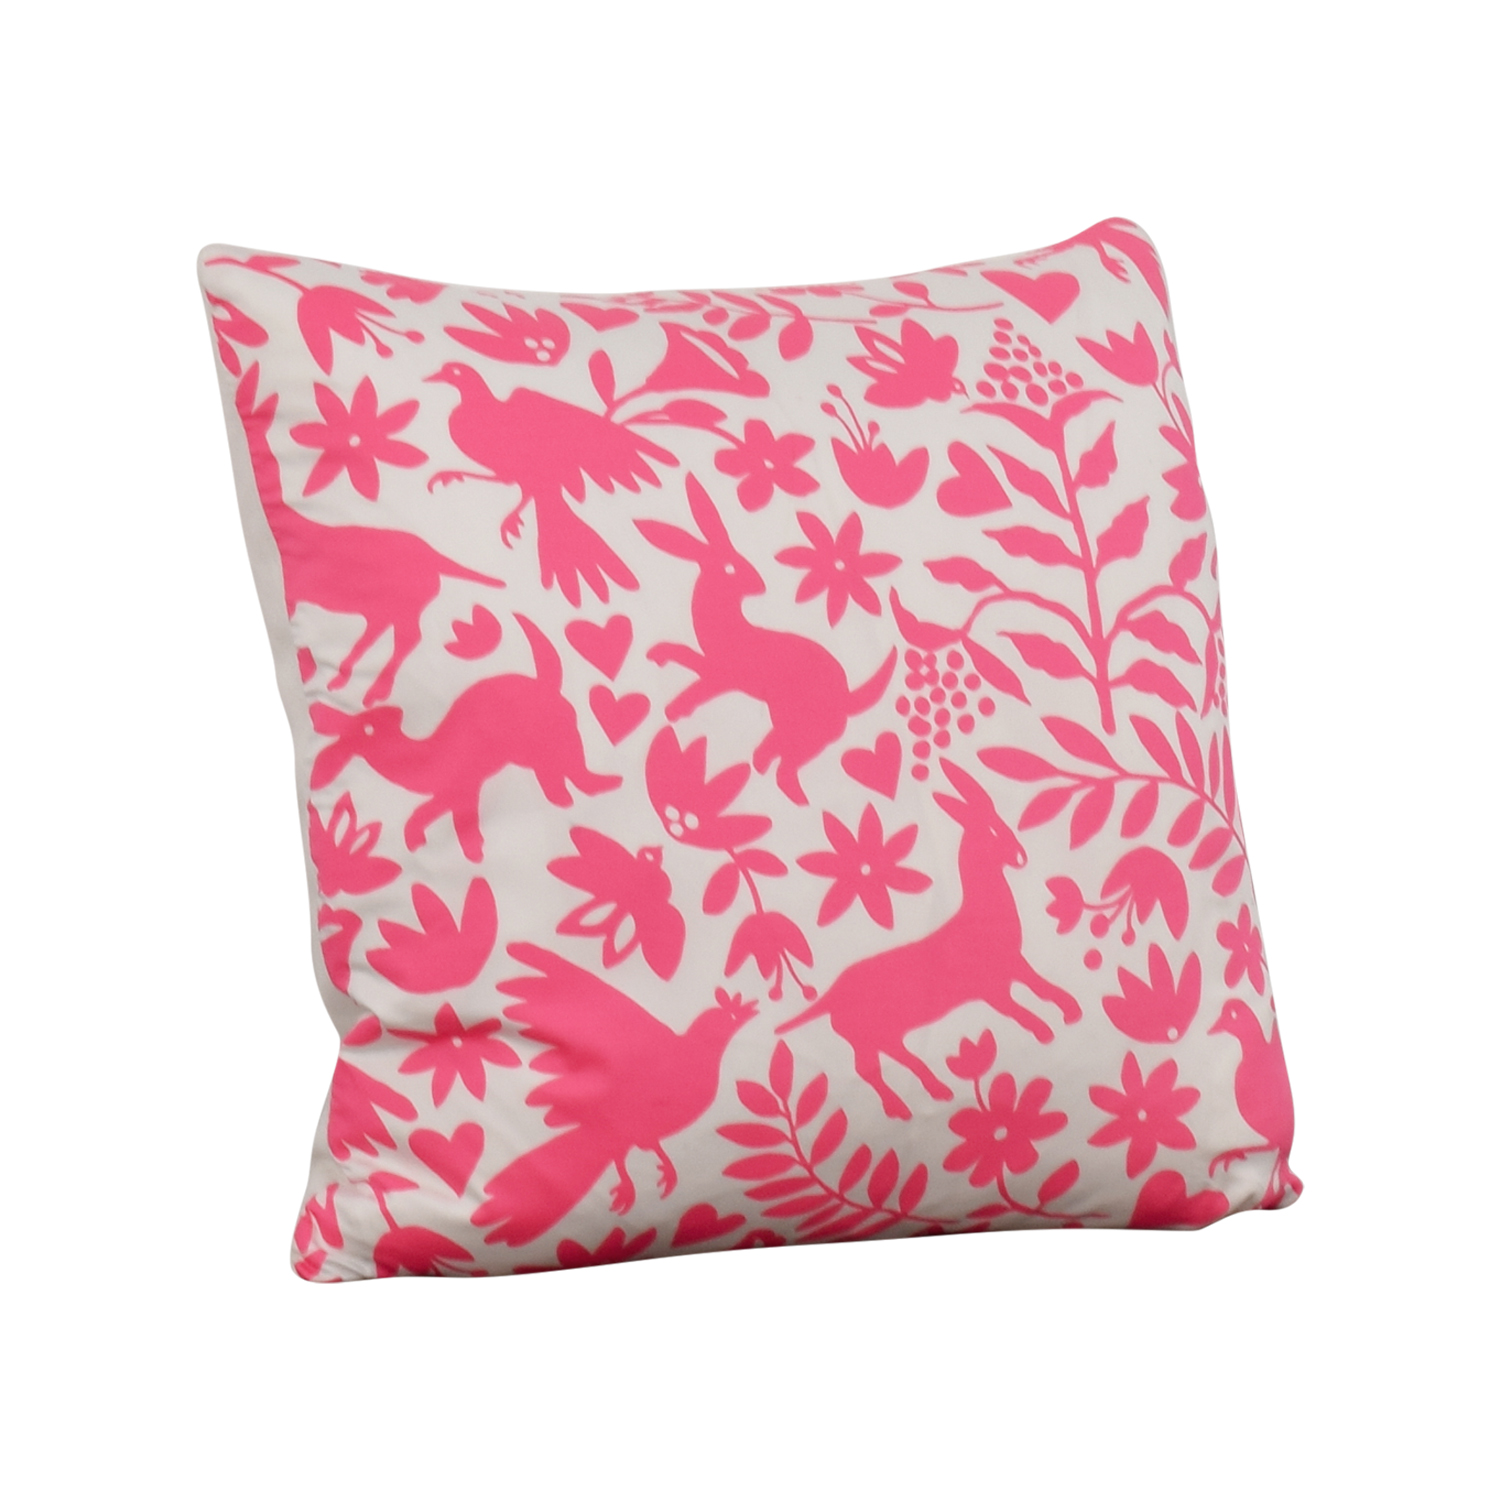 shop Society Social Society Social Pink Pattern Pillow online